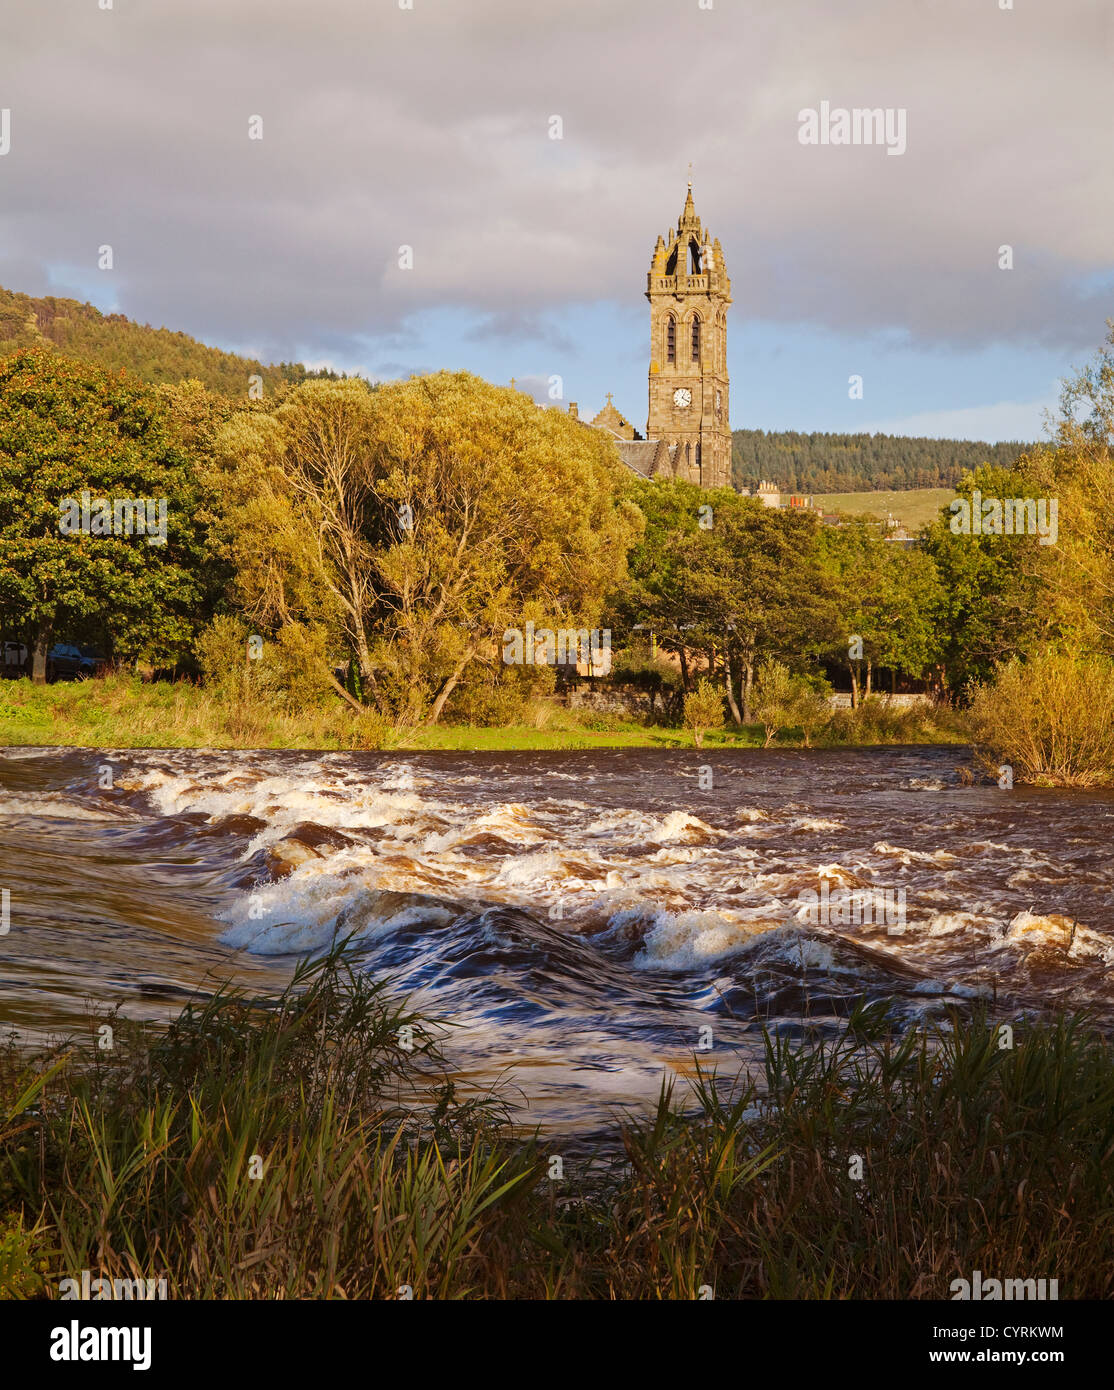 The Cauld (weir) on the River Tweed and Peebles Parish Church - Stock Image